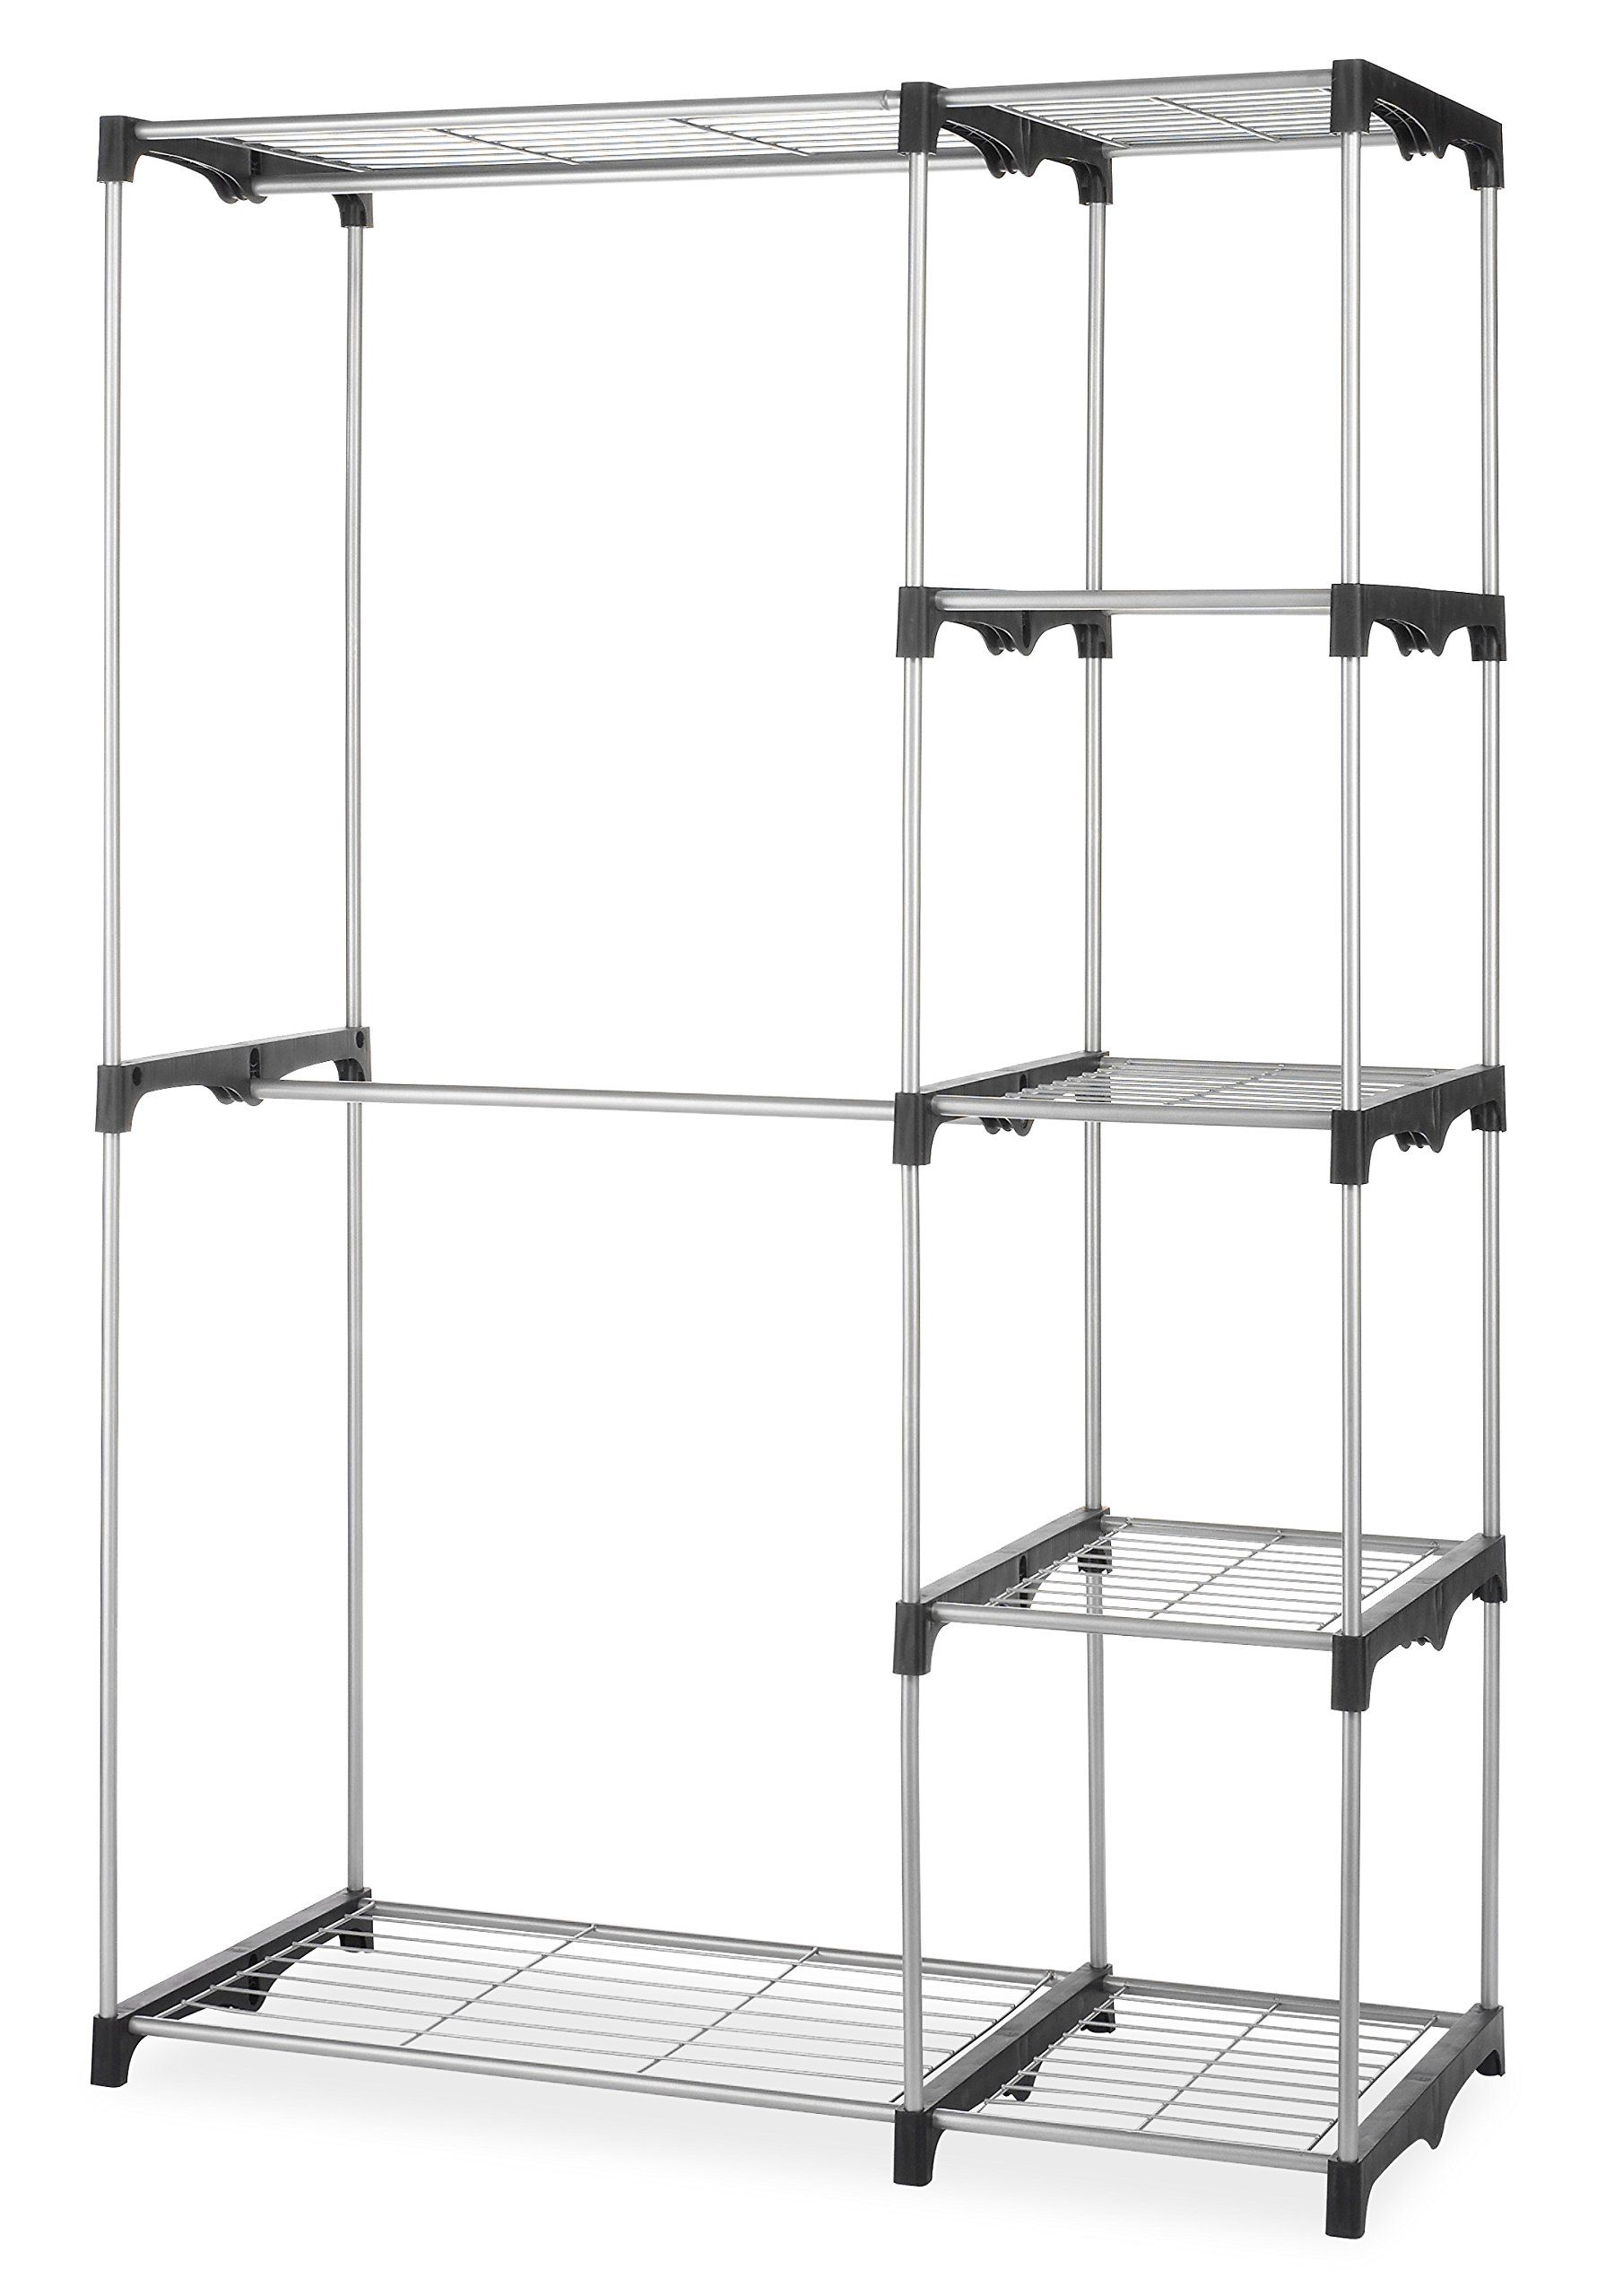 Multi Cube Modular Closet Organizer Stacker Clothes Wardrobe Rack Shoes Shelving Free Standing Closet Portable Closet Stand Alone Closet